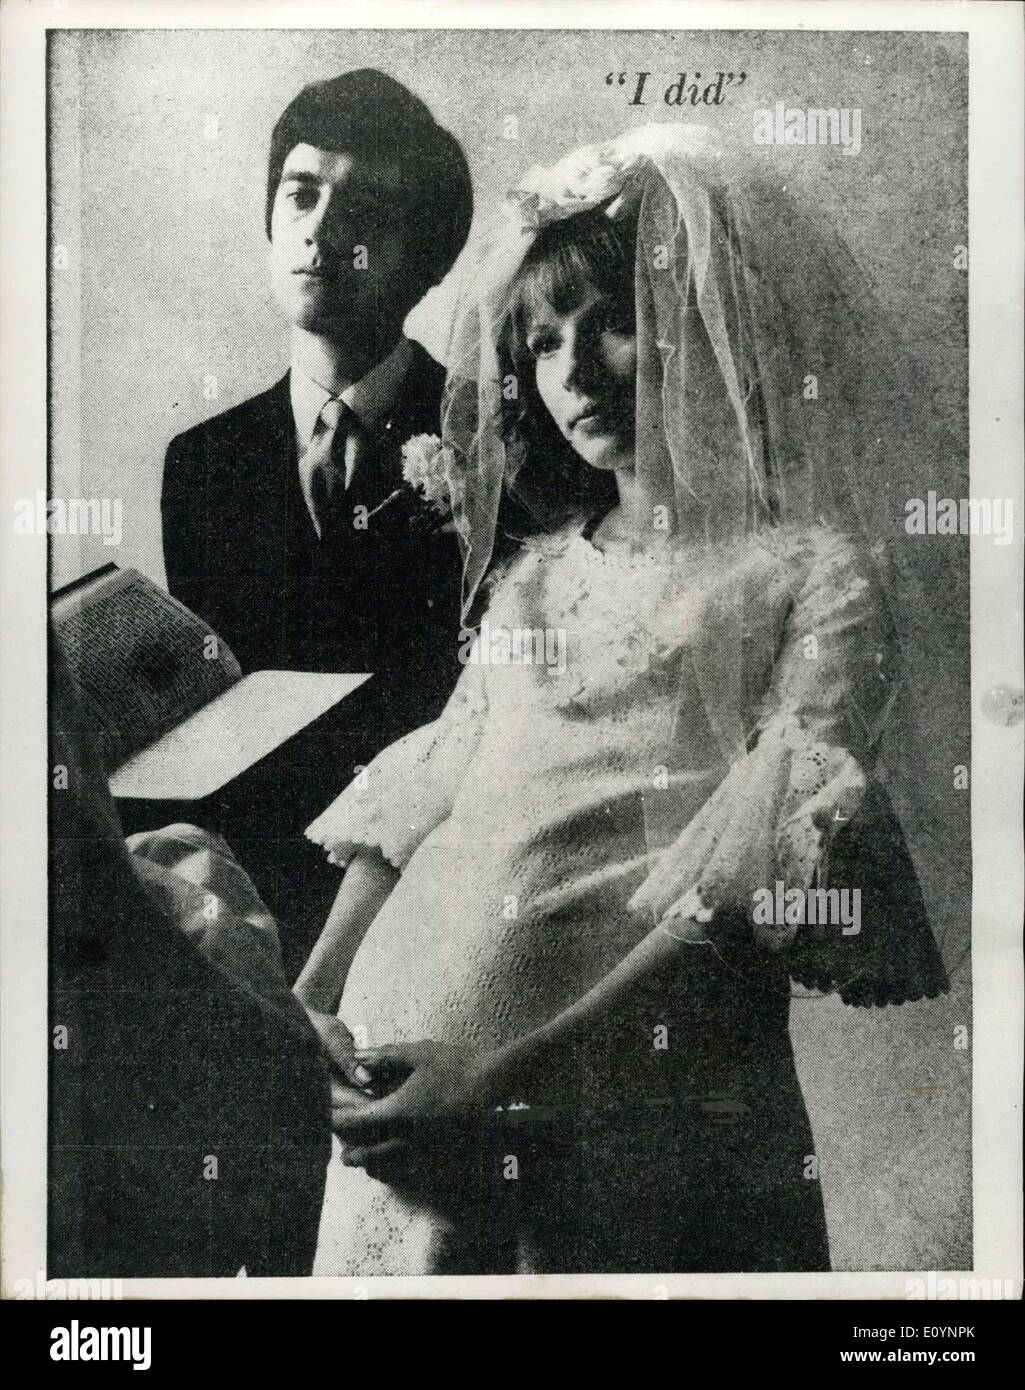 Dec. 29, 1970 - December 29th, 1970 Pregnant Bride advert too shocking. The pregnant bride was meant to shock people. But she has turned out to be a little too pregnant. and much too shocking. The bride follows Casanova and the Pregnant Man in a big birth-control campaign. She appears all dressed up for church and conspicuously maternal, in a pamphlet on contraception, published by the Government-backed Health Education Council. Dr. Bill James, director-general of the council, said yesterday: She's a little too pregnant, especially for a church. We do not want to be offensive to anybody - Stock Image